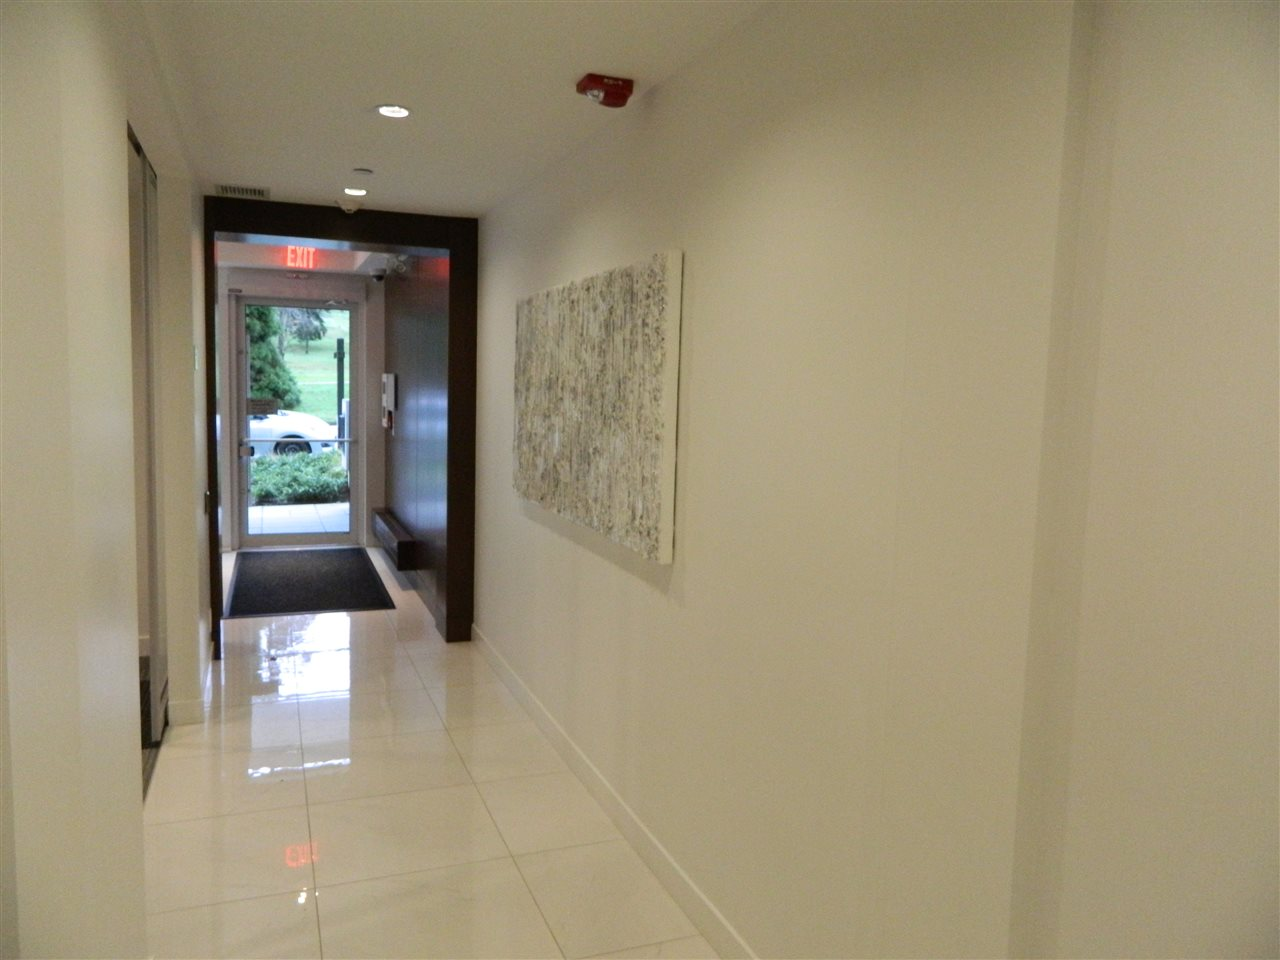 Lobby Entry Hall Way